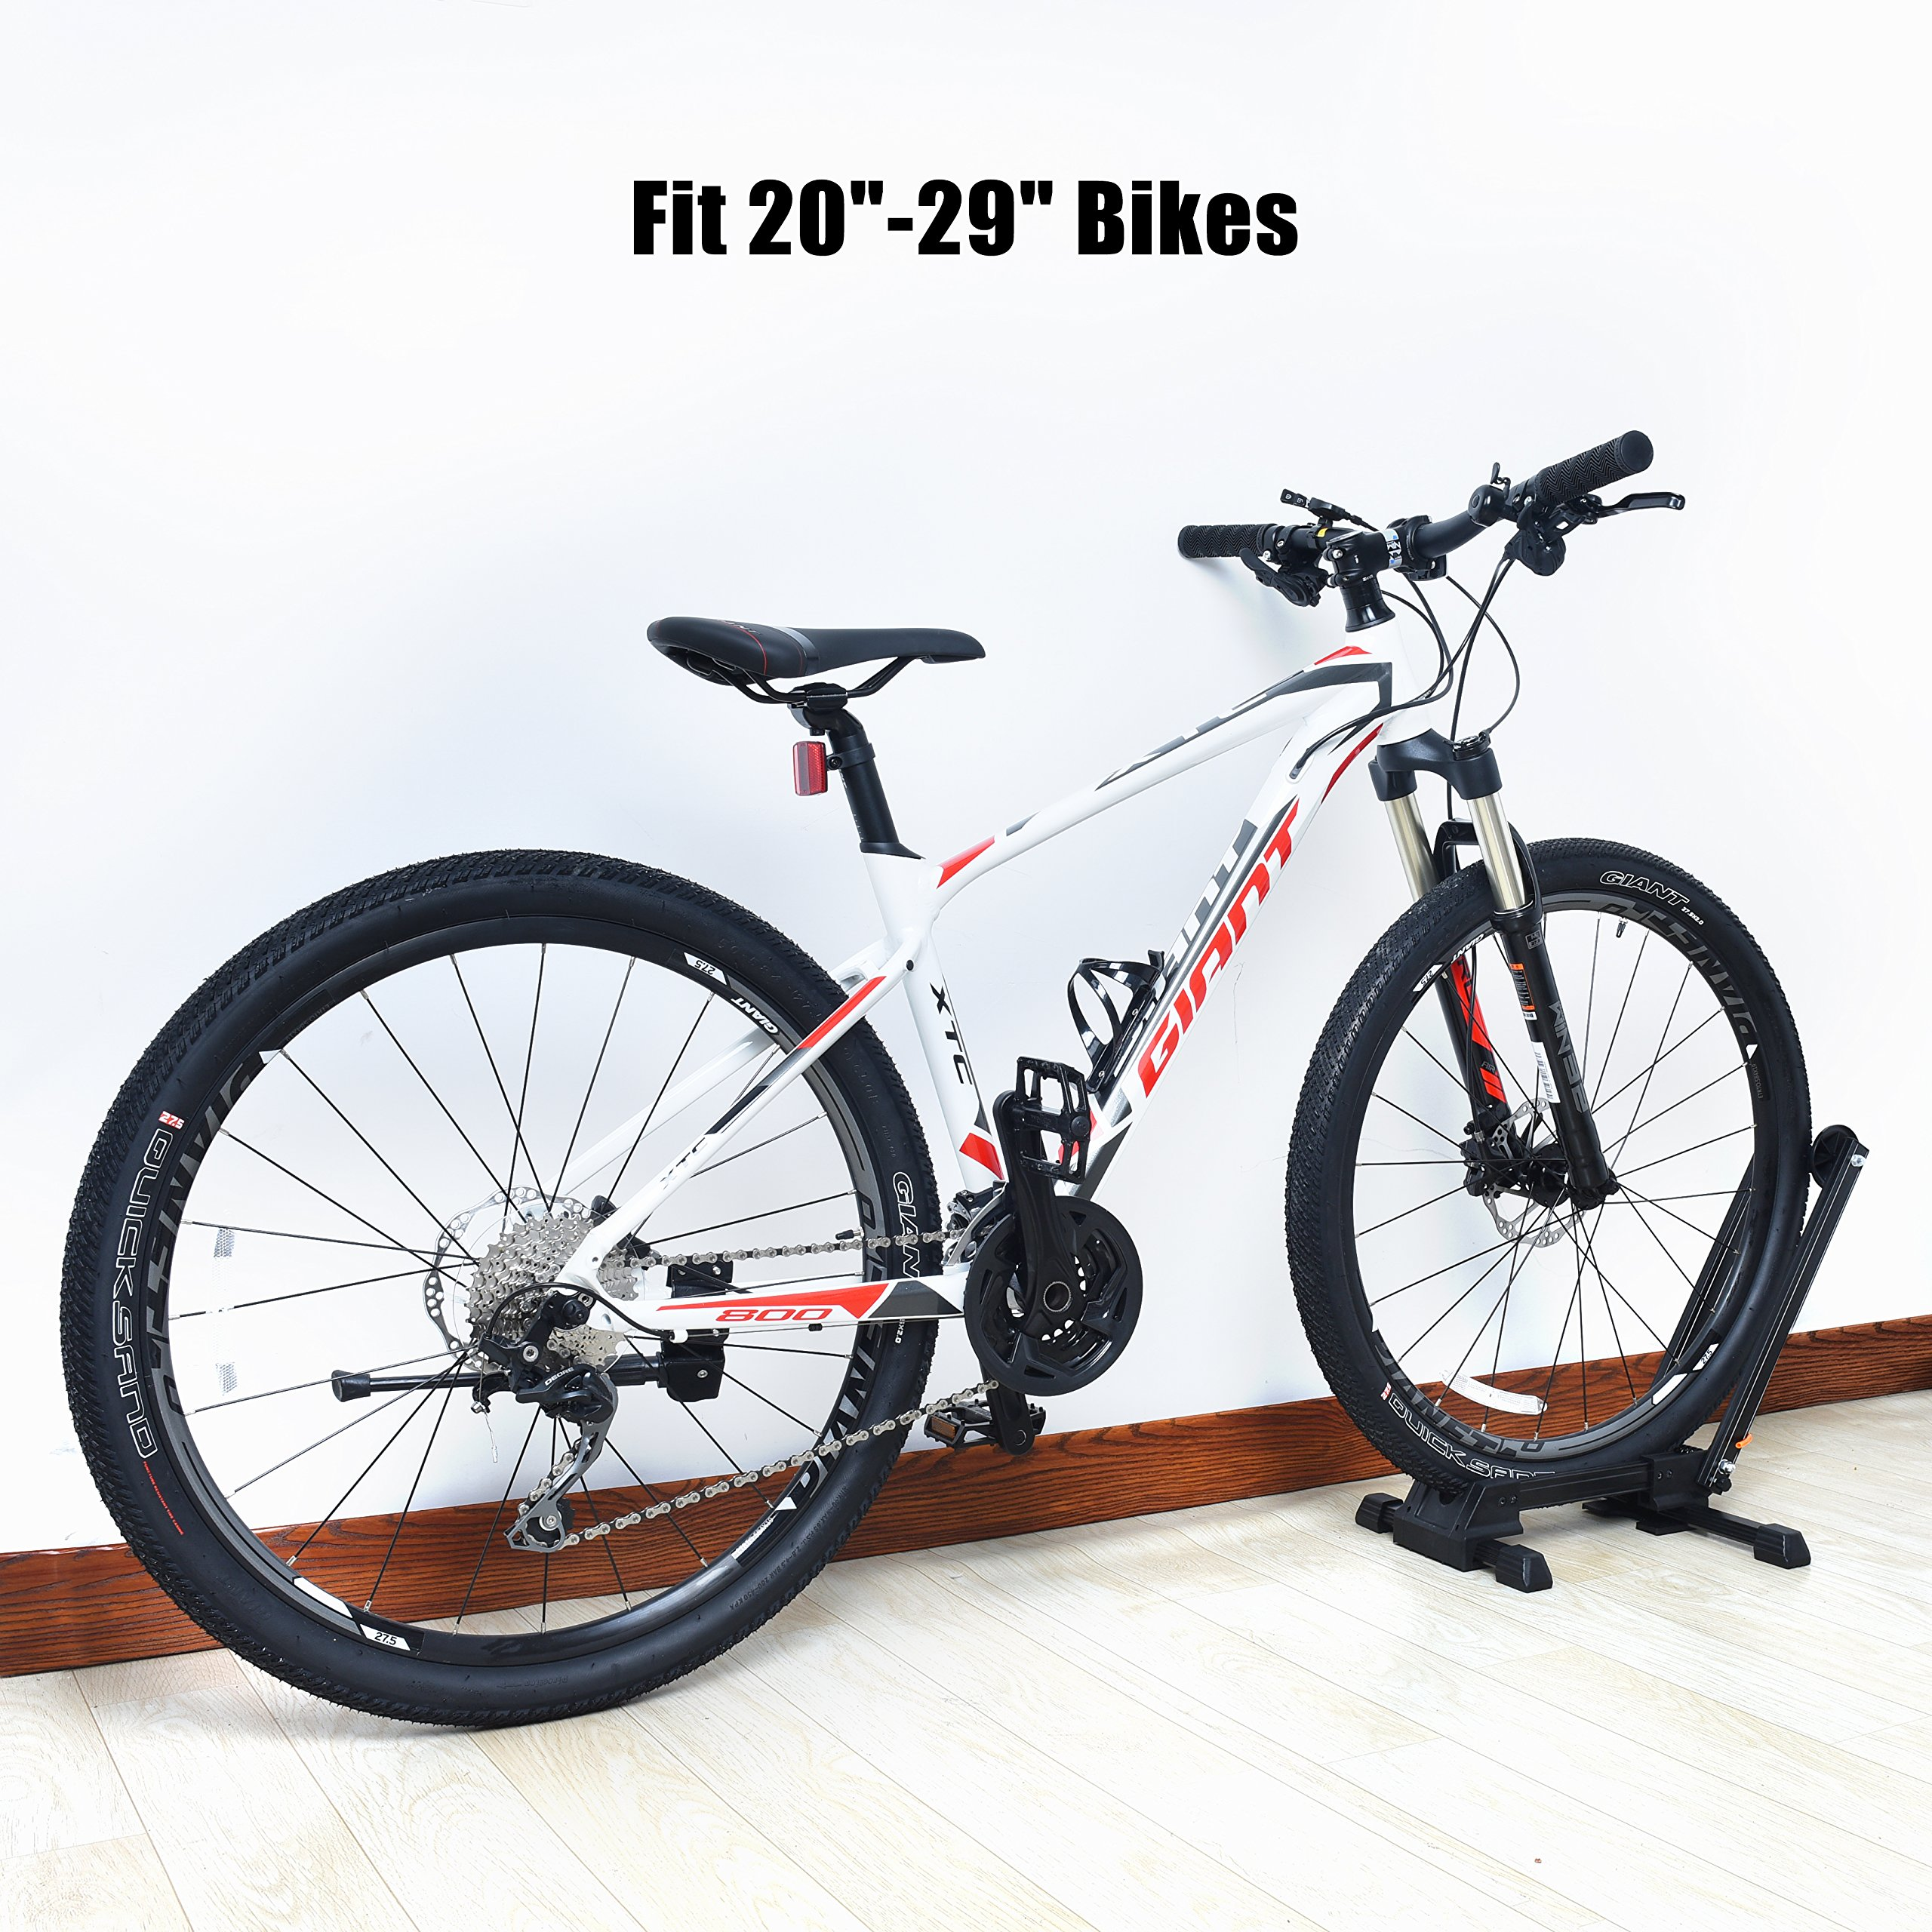 Bike Folding Stand Floor Parking Rack Alloy Bicycle Holder Bikes Home Garage Indoor Storage Fit 20''-29'' by Auwey (Image #3)